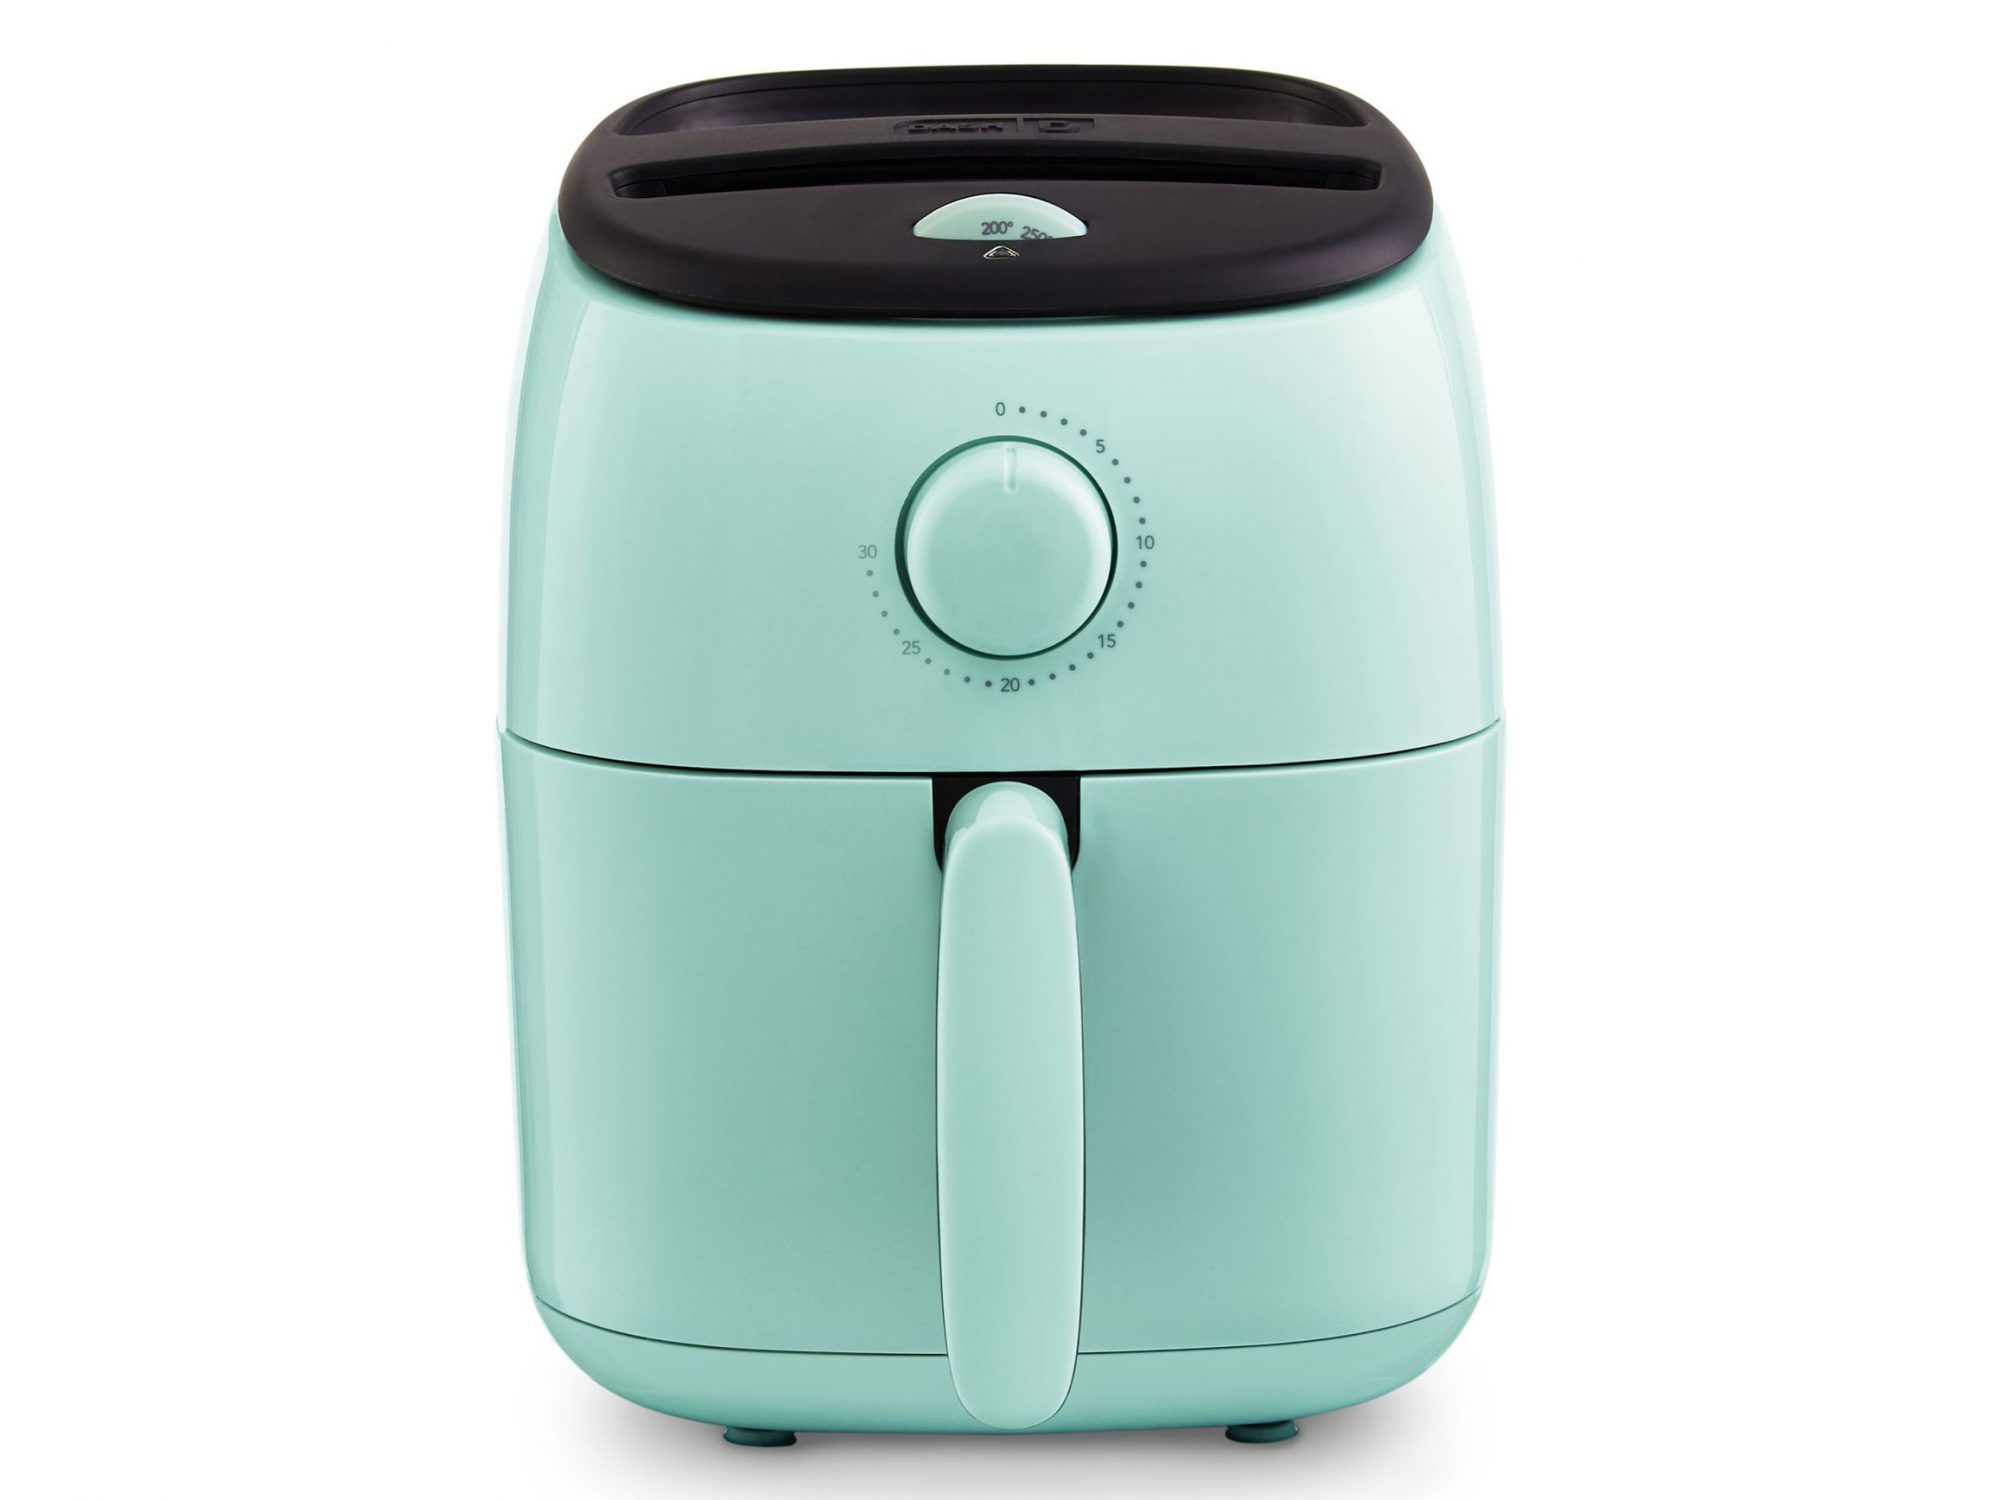 Dash Tasti Crisp Air Fryer